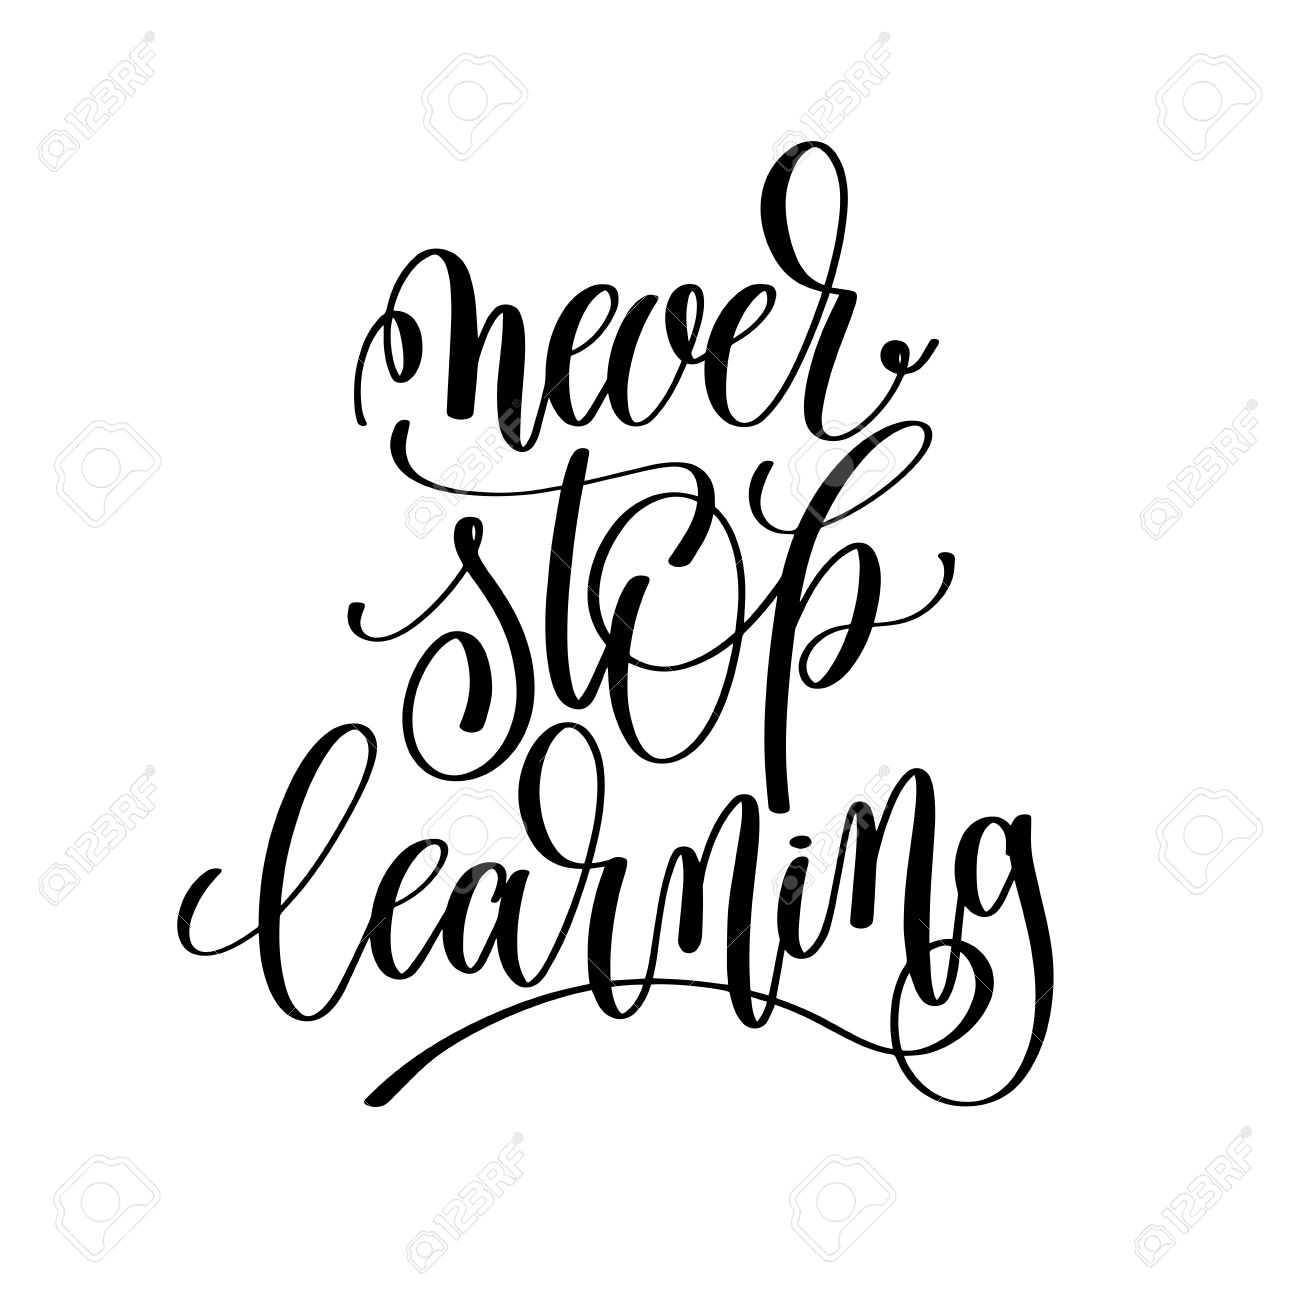 Image of: Smile Never Stop Learning Black And White Hand Written Lettering Positive Quote Motivation And Inspiration Modern 123rfcom Never Stop Learning Black And White Hand Written Lettering Positive